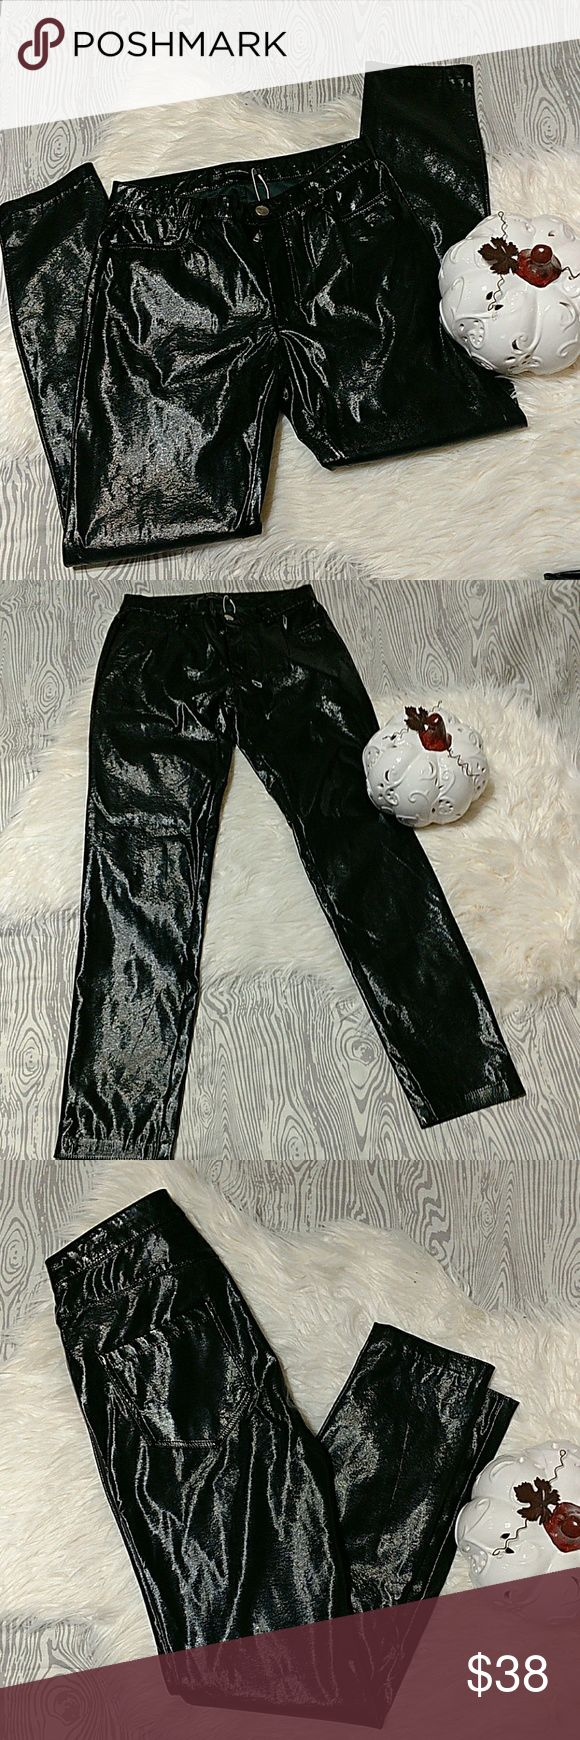 Zara Skinny Faux Patent Leather Pants Please refer to pictures for overall condition. The last three photos are online stock photos.  Brand New. Size XS.  No trades. Come Hell or High Water, HOUSTON STRONG 🤘 Zara Pants